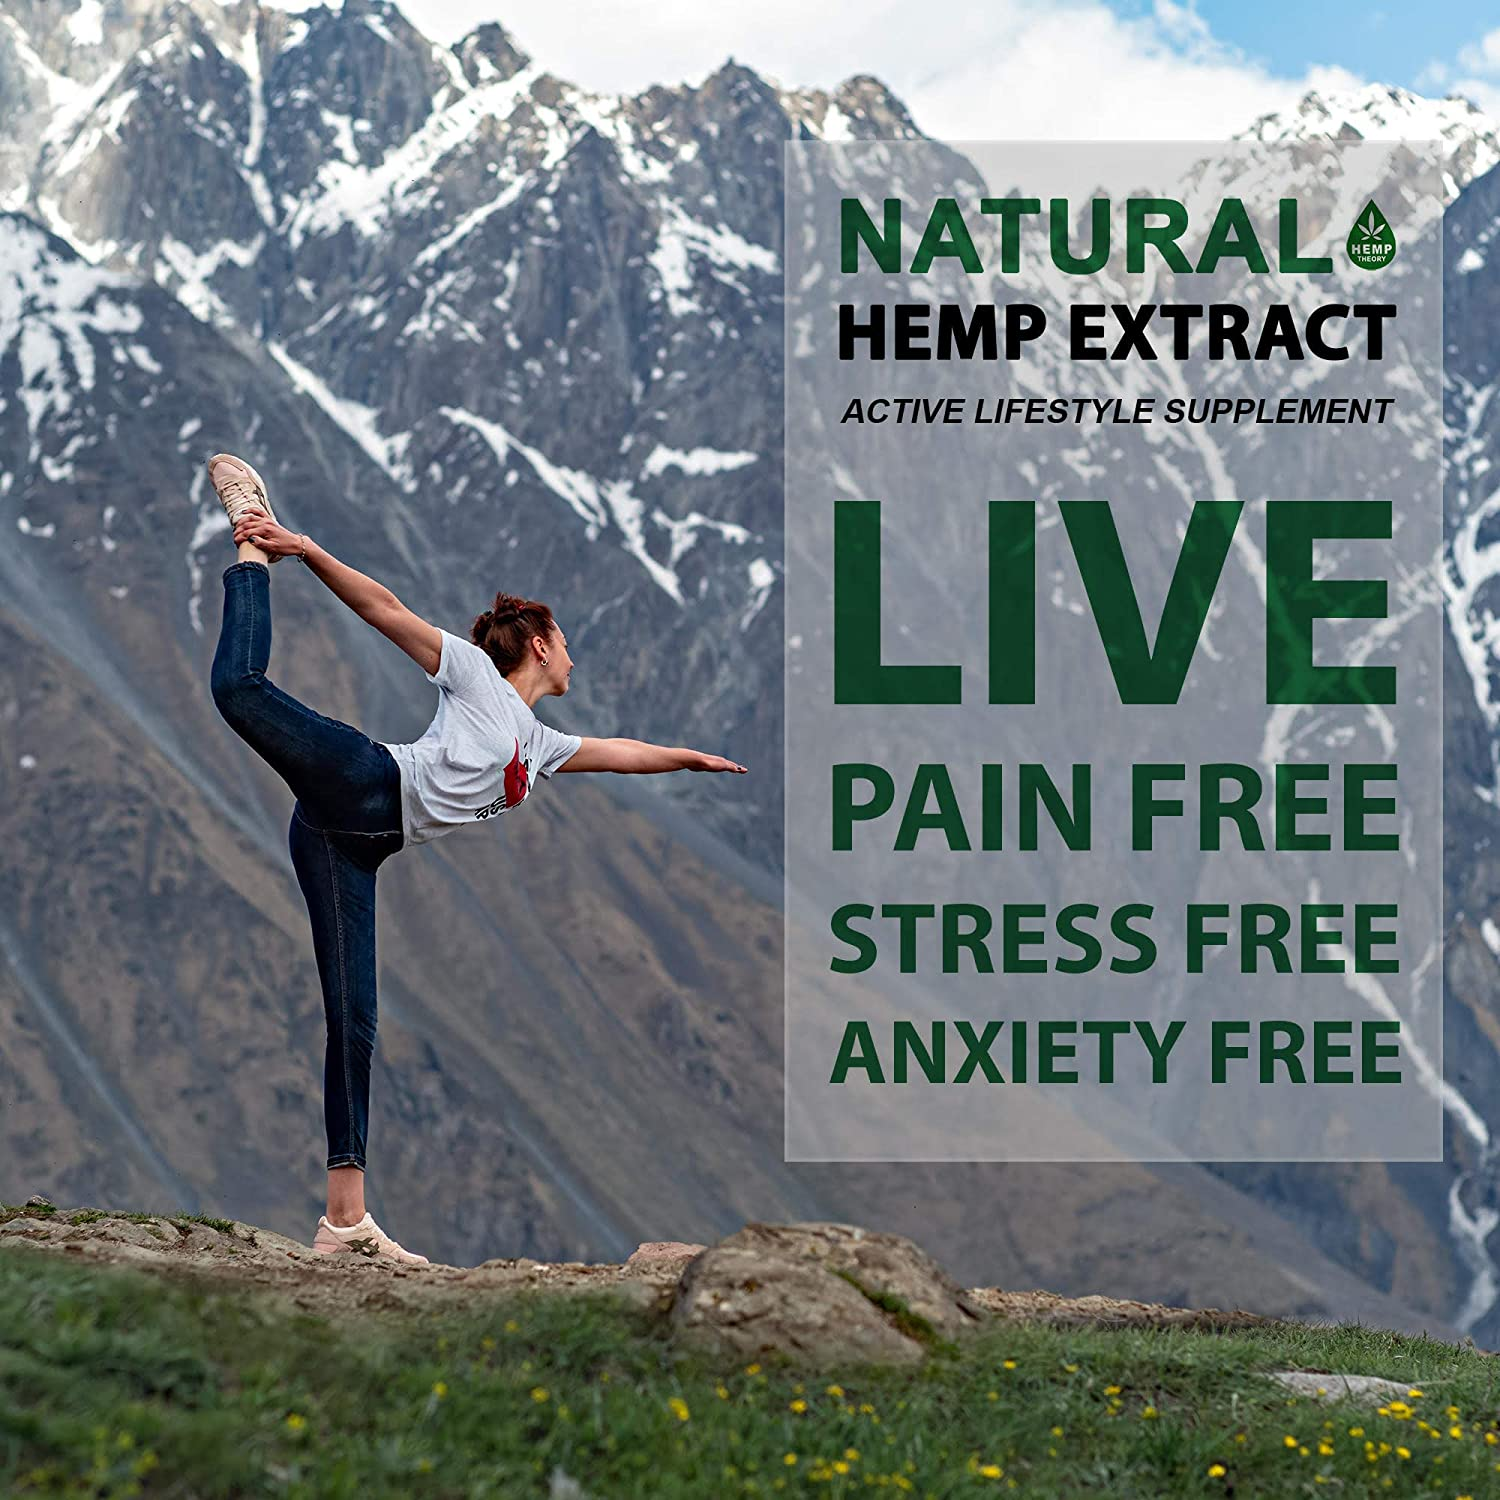 In a stressful world, it's natural to need some more than just a good cup of tea. Hemp Theory is great to help you calm your nerves and anxiety.